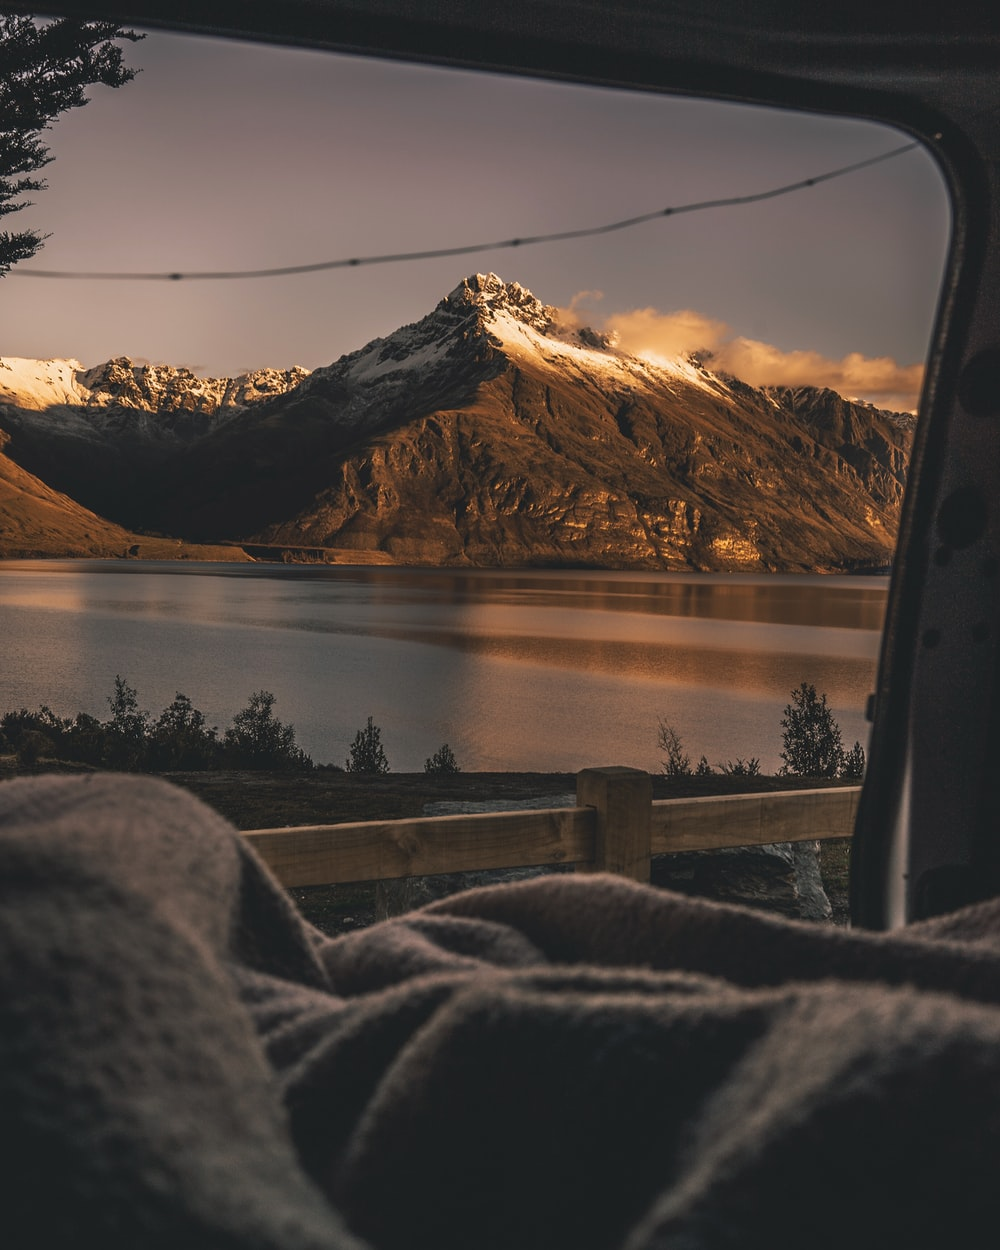 snow capped mountain beside lake view from vehicle door